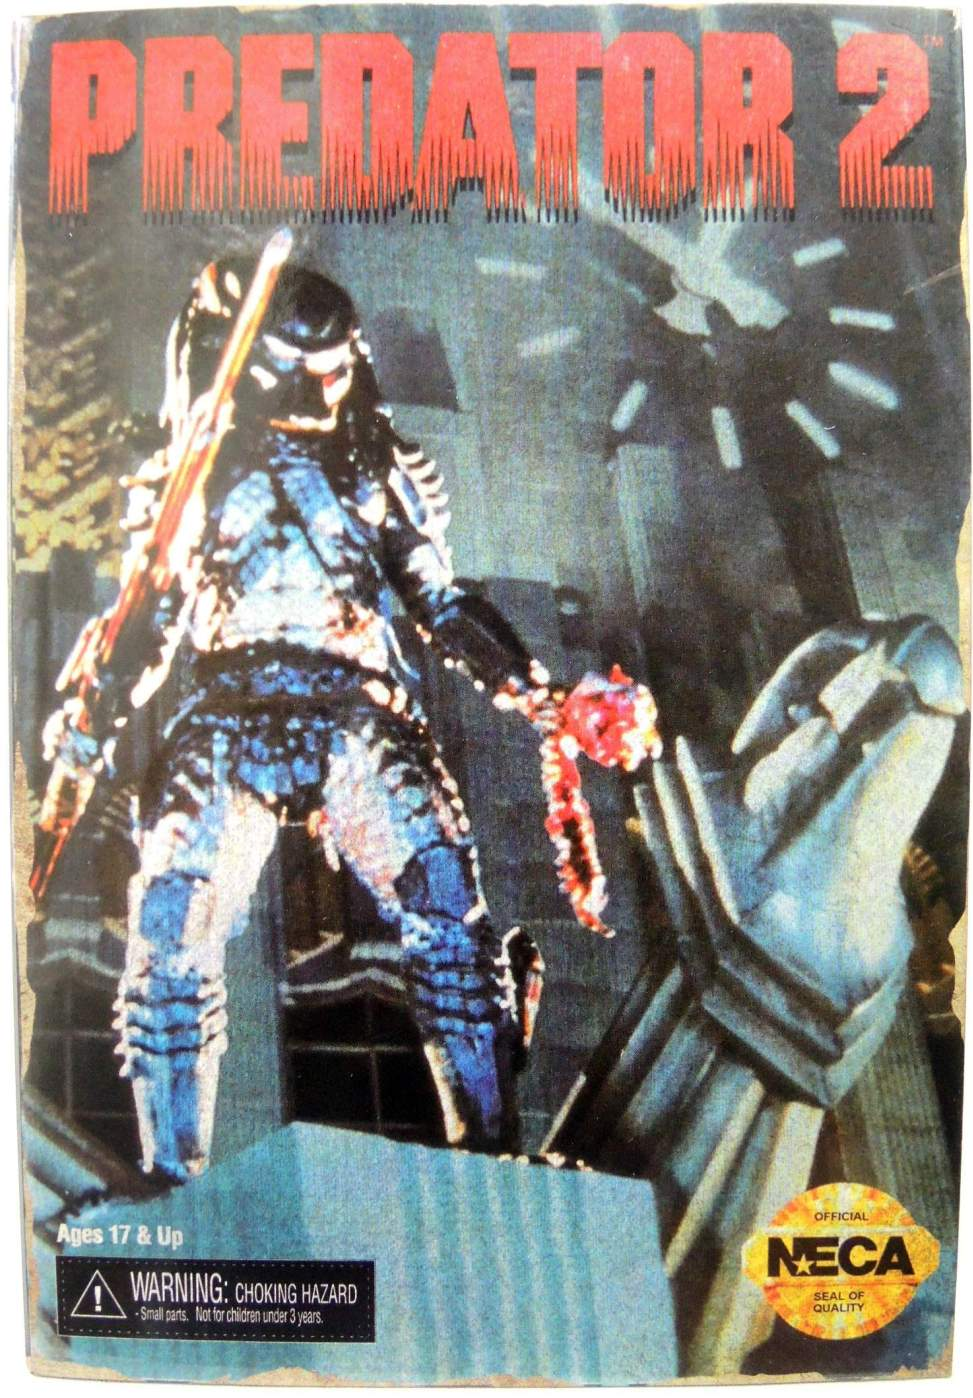 NECA Predator 2 Video Game 8 inch City Hunter Figure NECA, Predators, Action Figures, 2015, scifi, movie